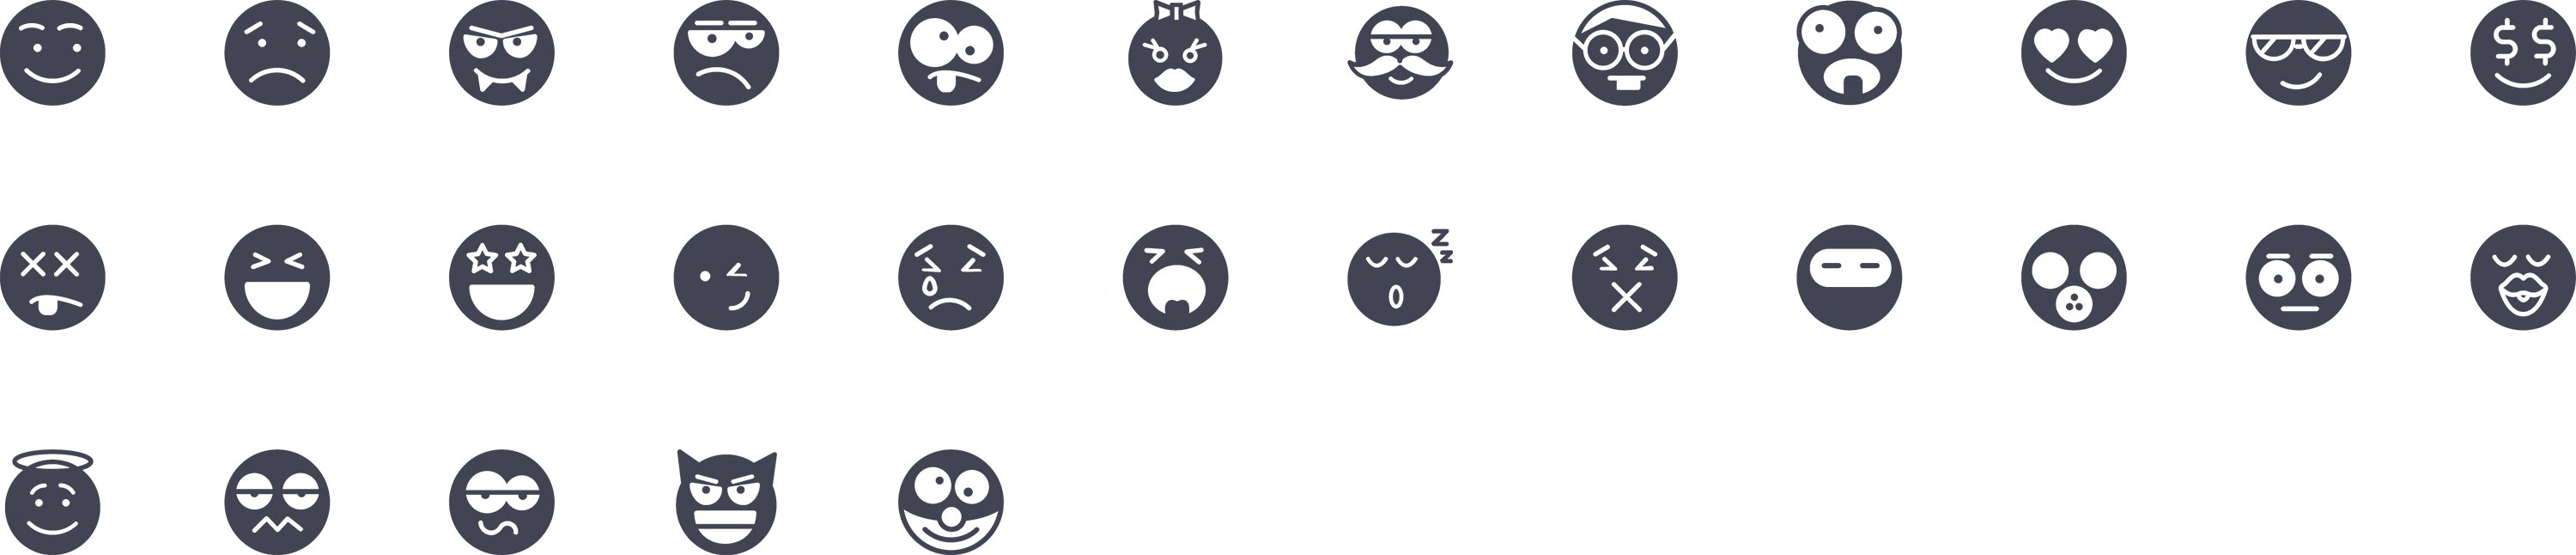 Emoticons Glyph Icons